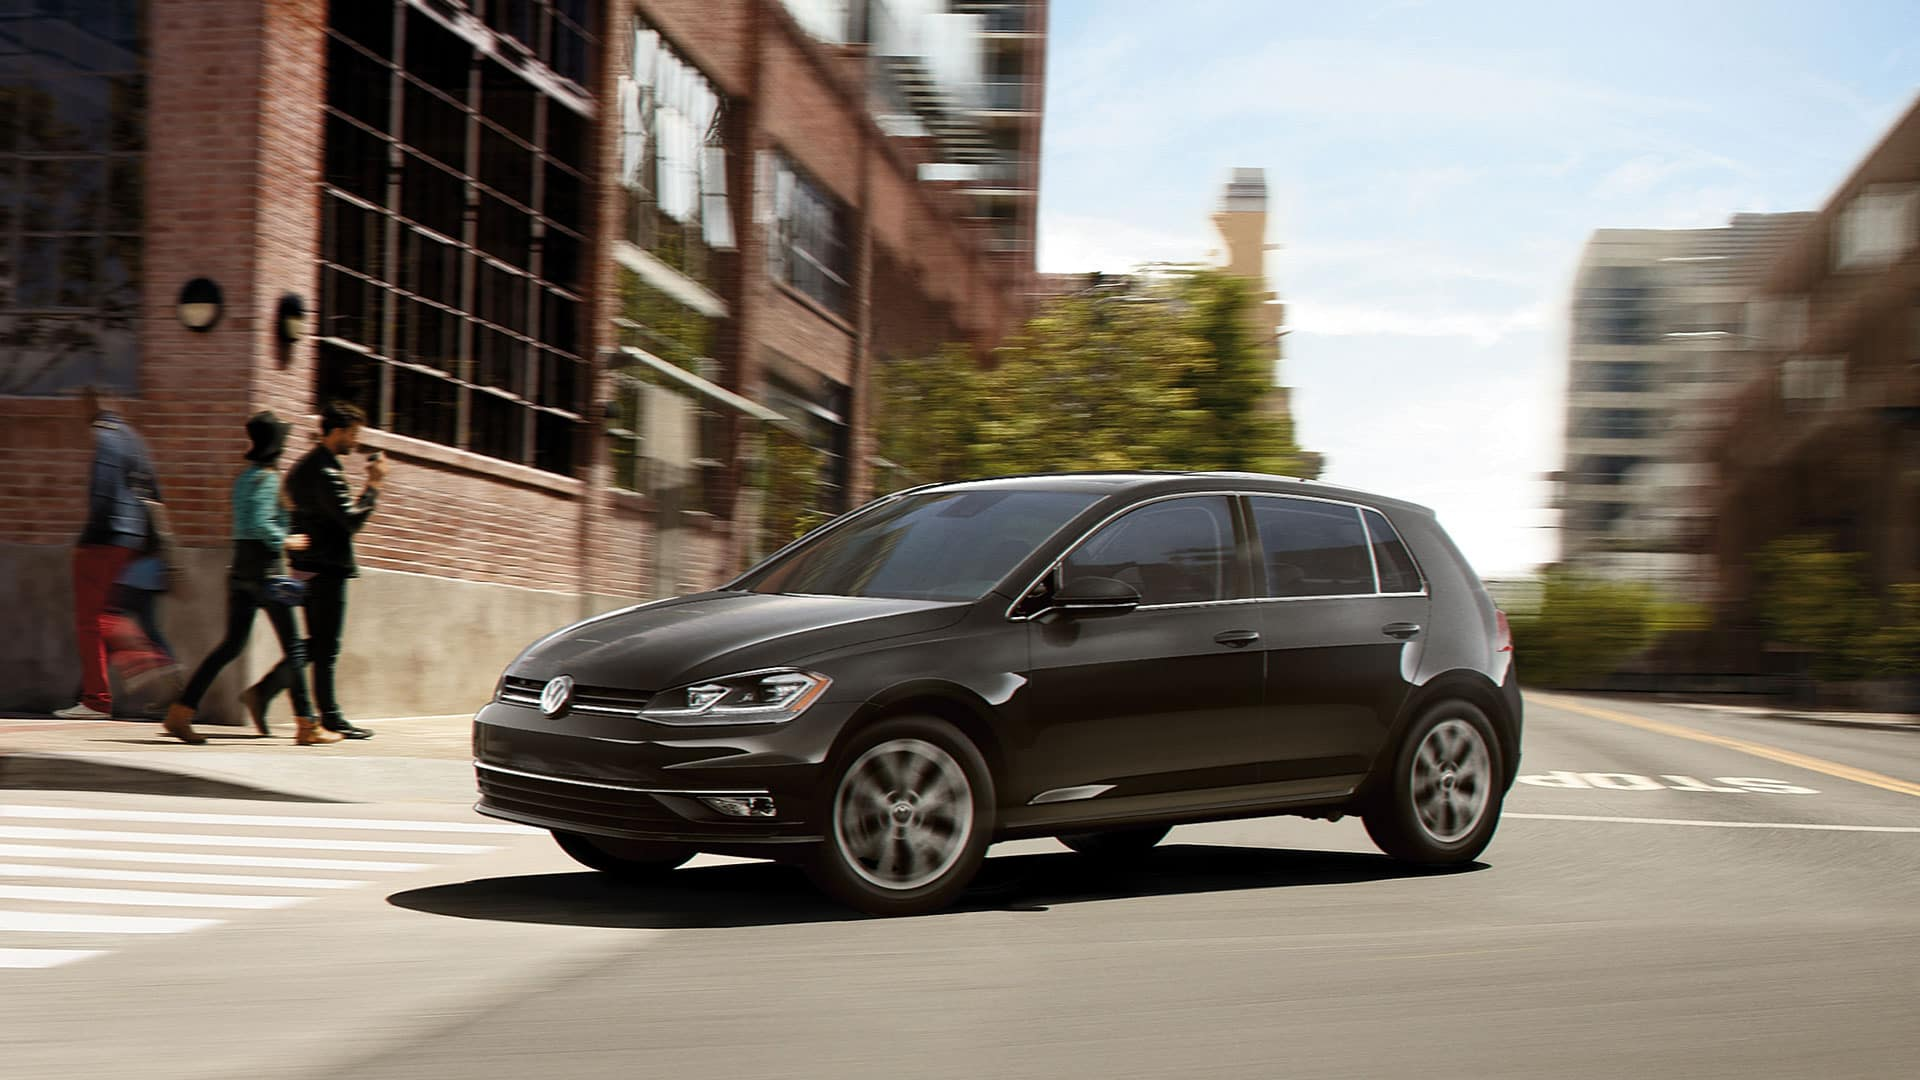 A black 2019 VW Golf showing off it's cross differential system to several hipsters outside an old factory that has been converted to office space or lofts.